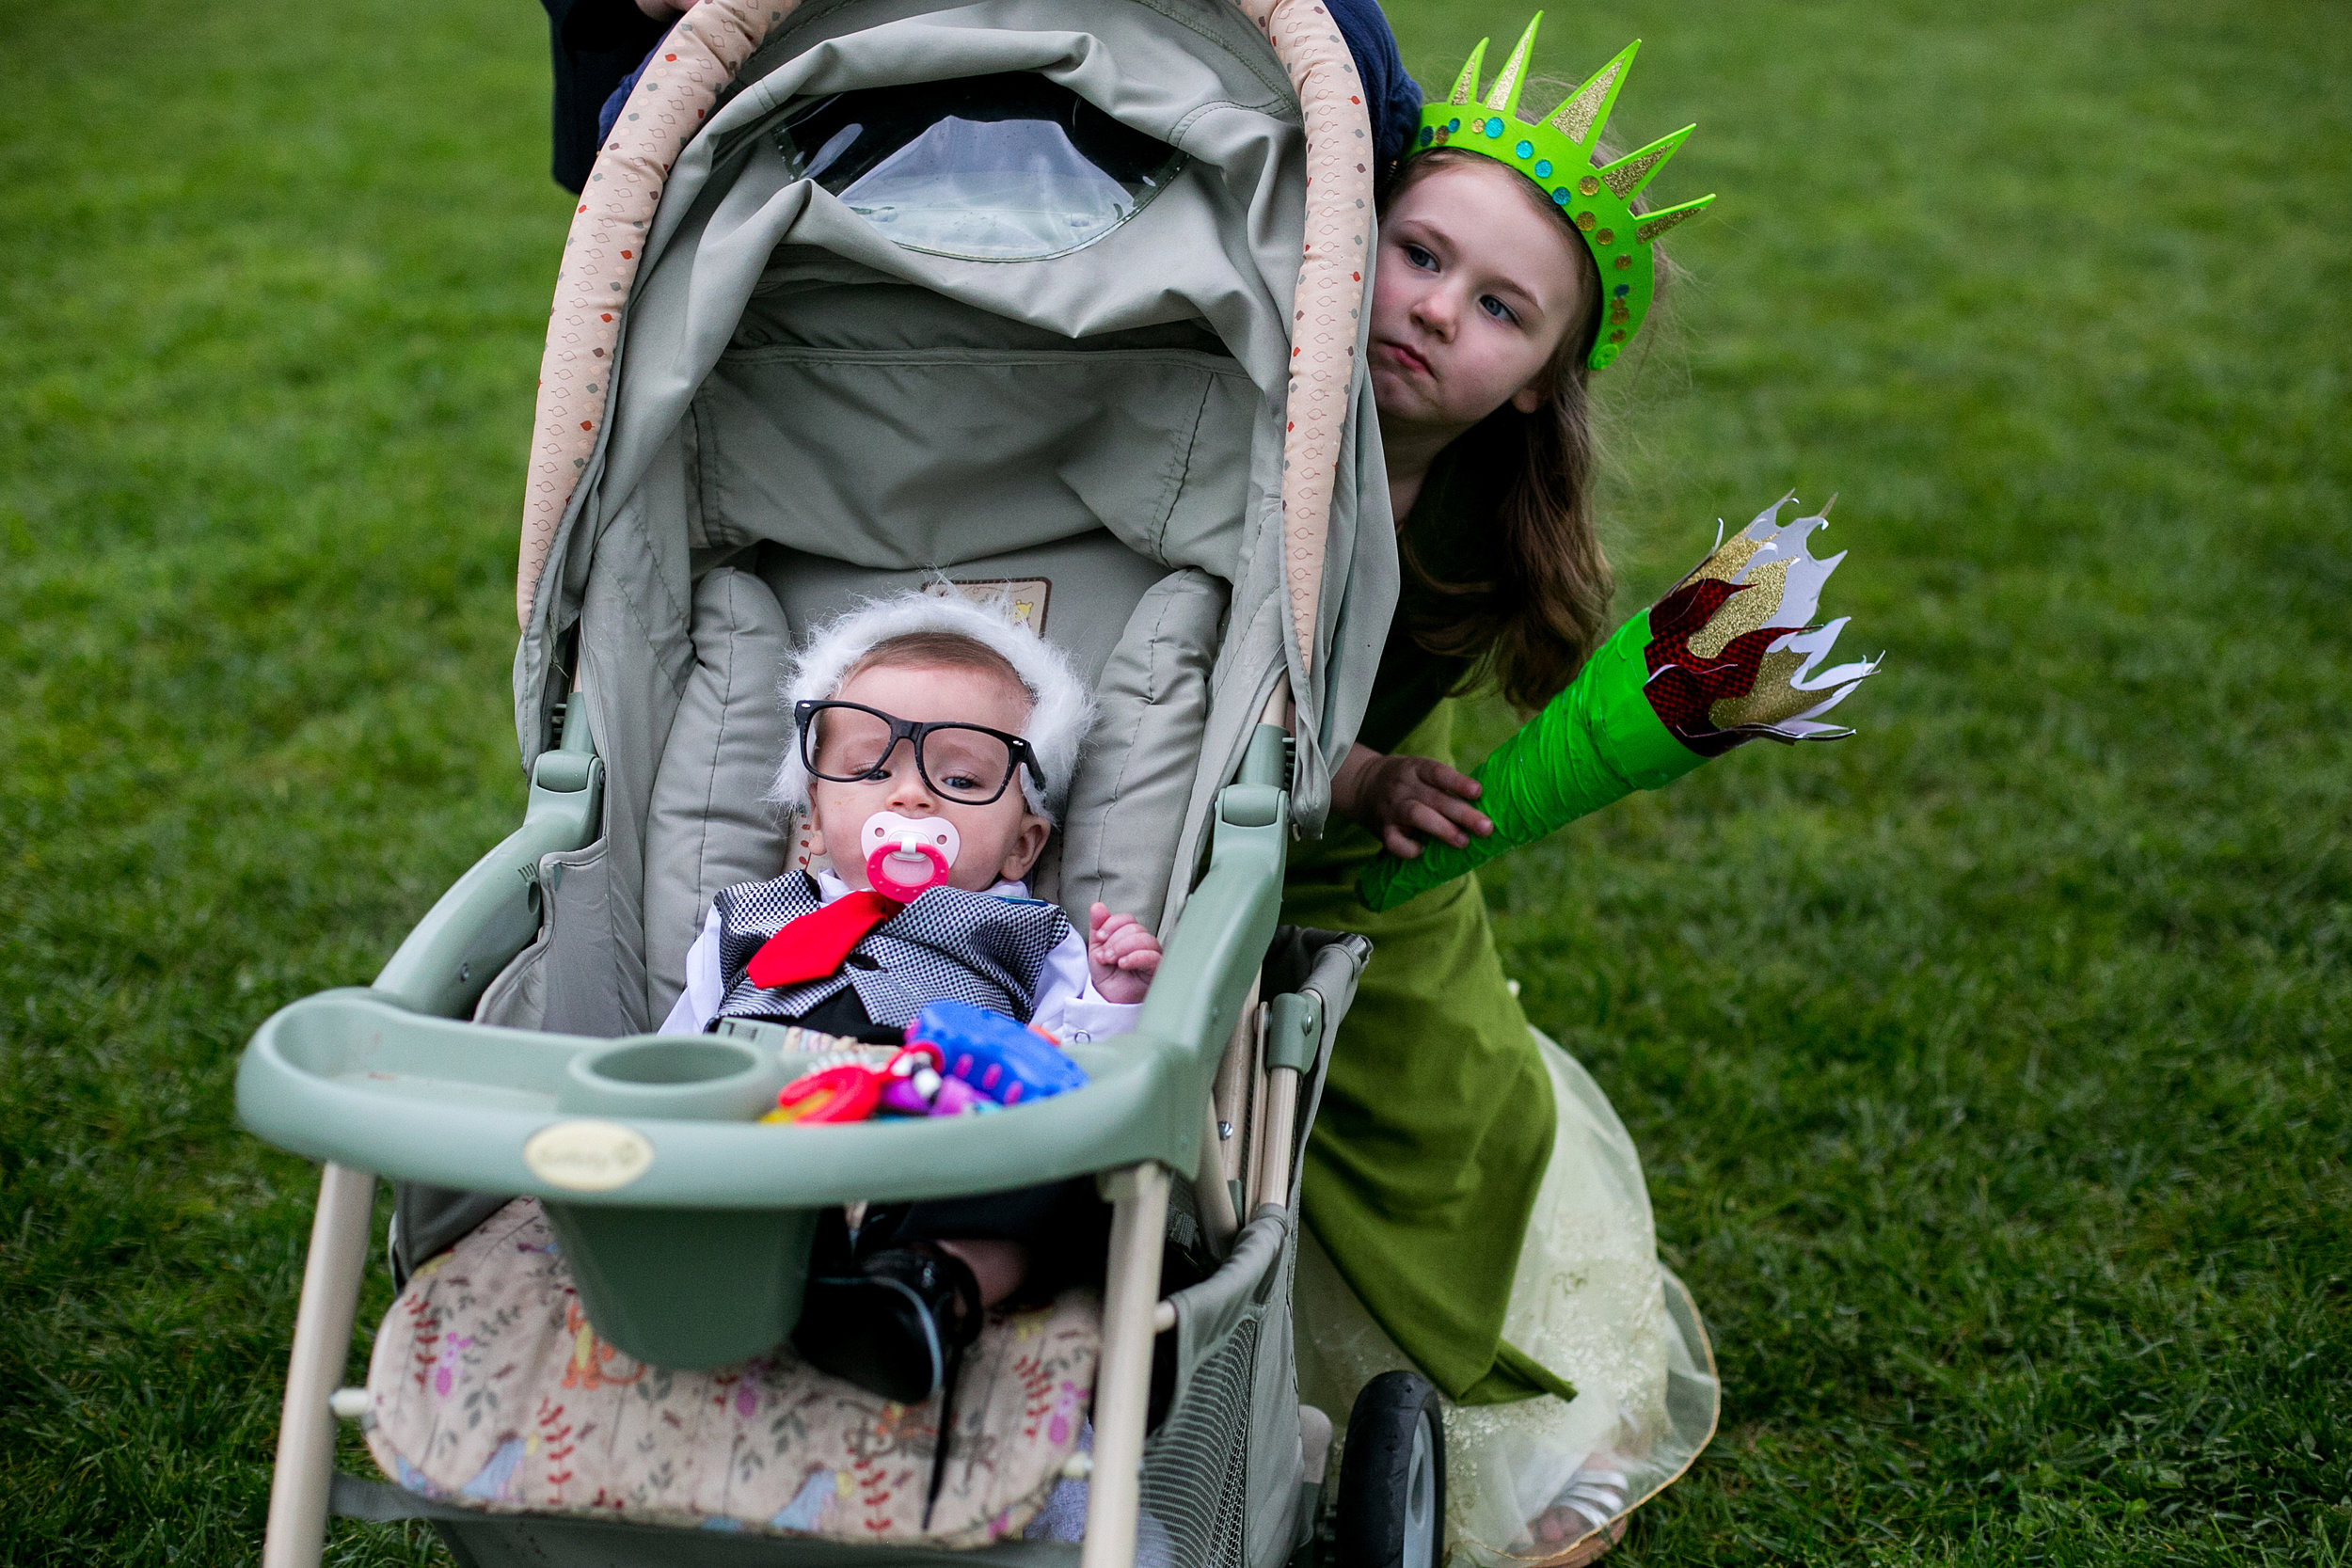 Lucian Toler, 5 months old and his sister Kathryn Toler, 4 years old, wait to hear Democratic presidential candidate Bernie Sanders speak at a rally in Louisville, Kentucky